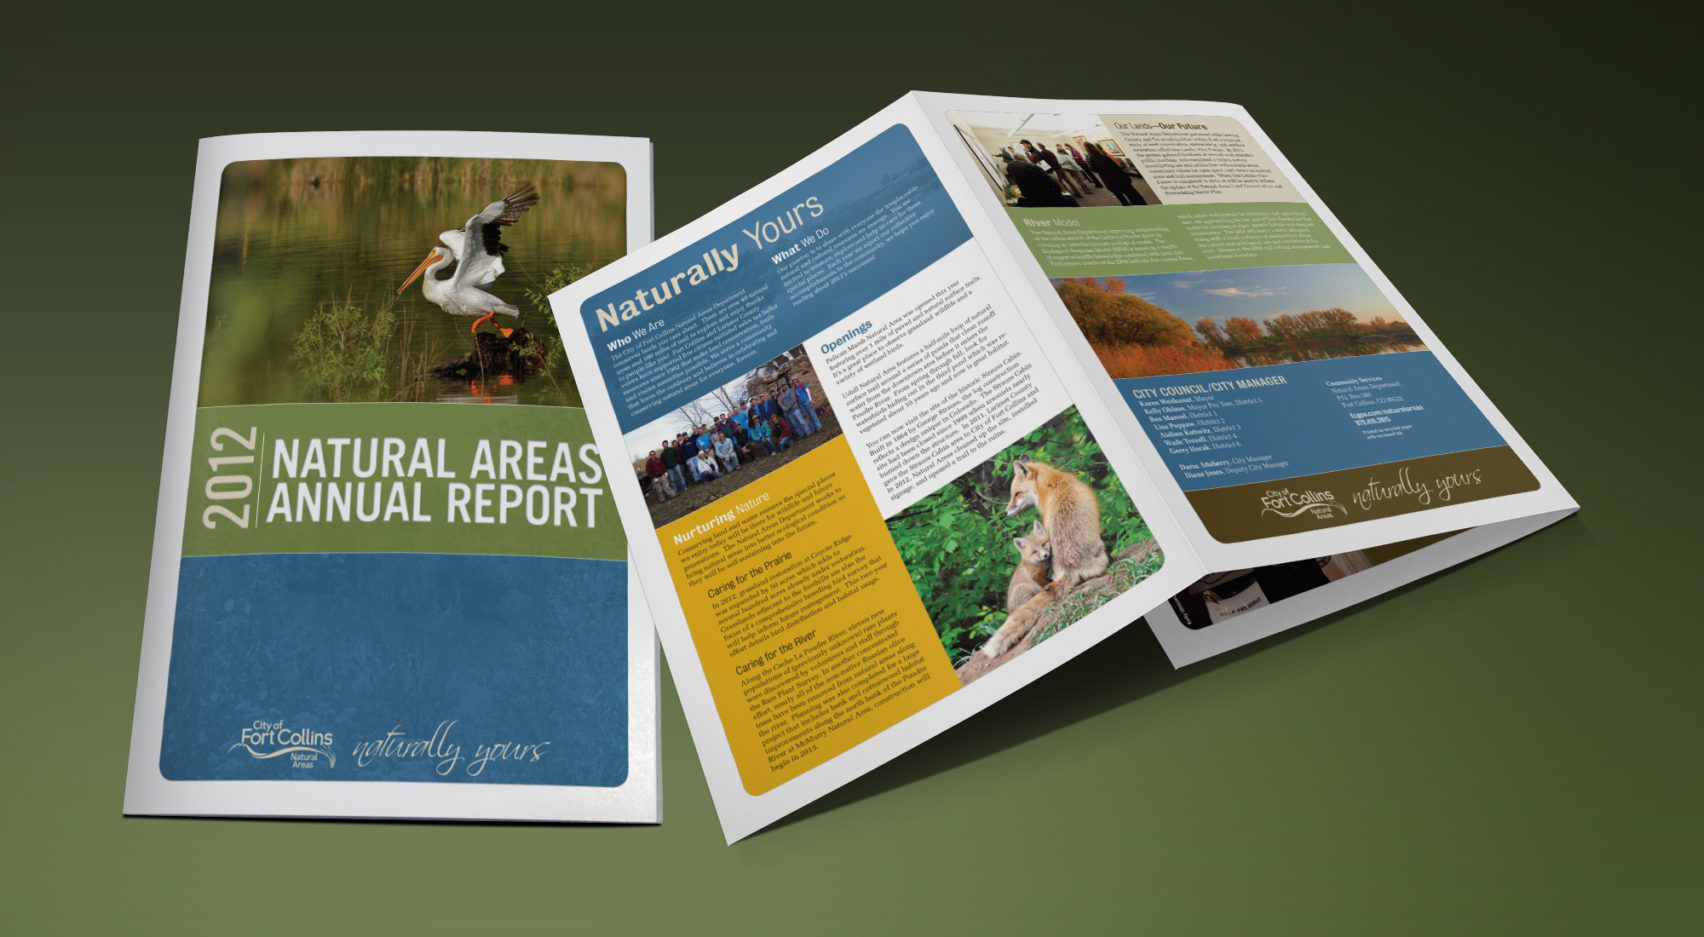 City of Fort Collins Tracks & Trails annual report layout